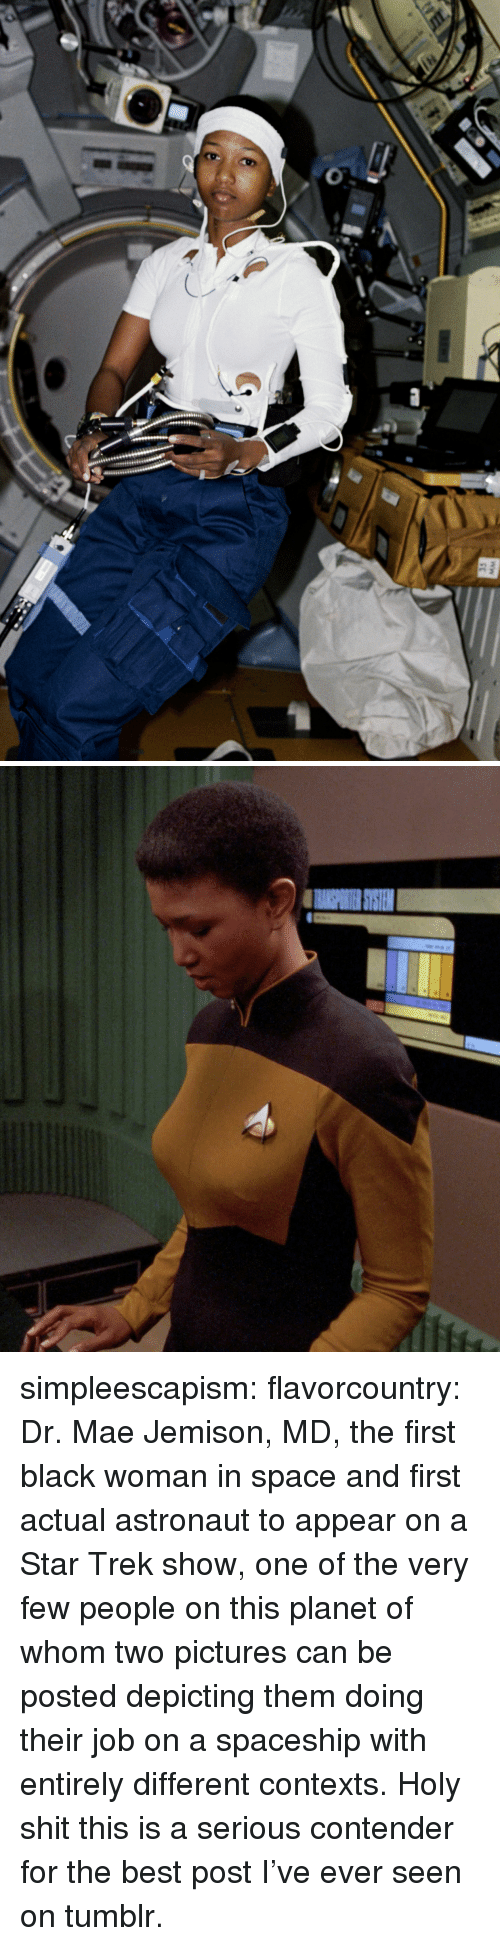 Shit, Star Trek, and Tumblr: simpleescapism:  flavorcountry: Dr. Mae Jemison, MD, the first black woman in space and first actual astronaut to appear on a Star Trek show, one of the very few people on this planet of whom two pictures can be posted depicting them doing their job on a spaceship with entirely different contexts. Holy shit this is a serious contender for the best post I've ever seen on tumblr.